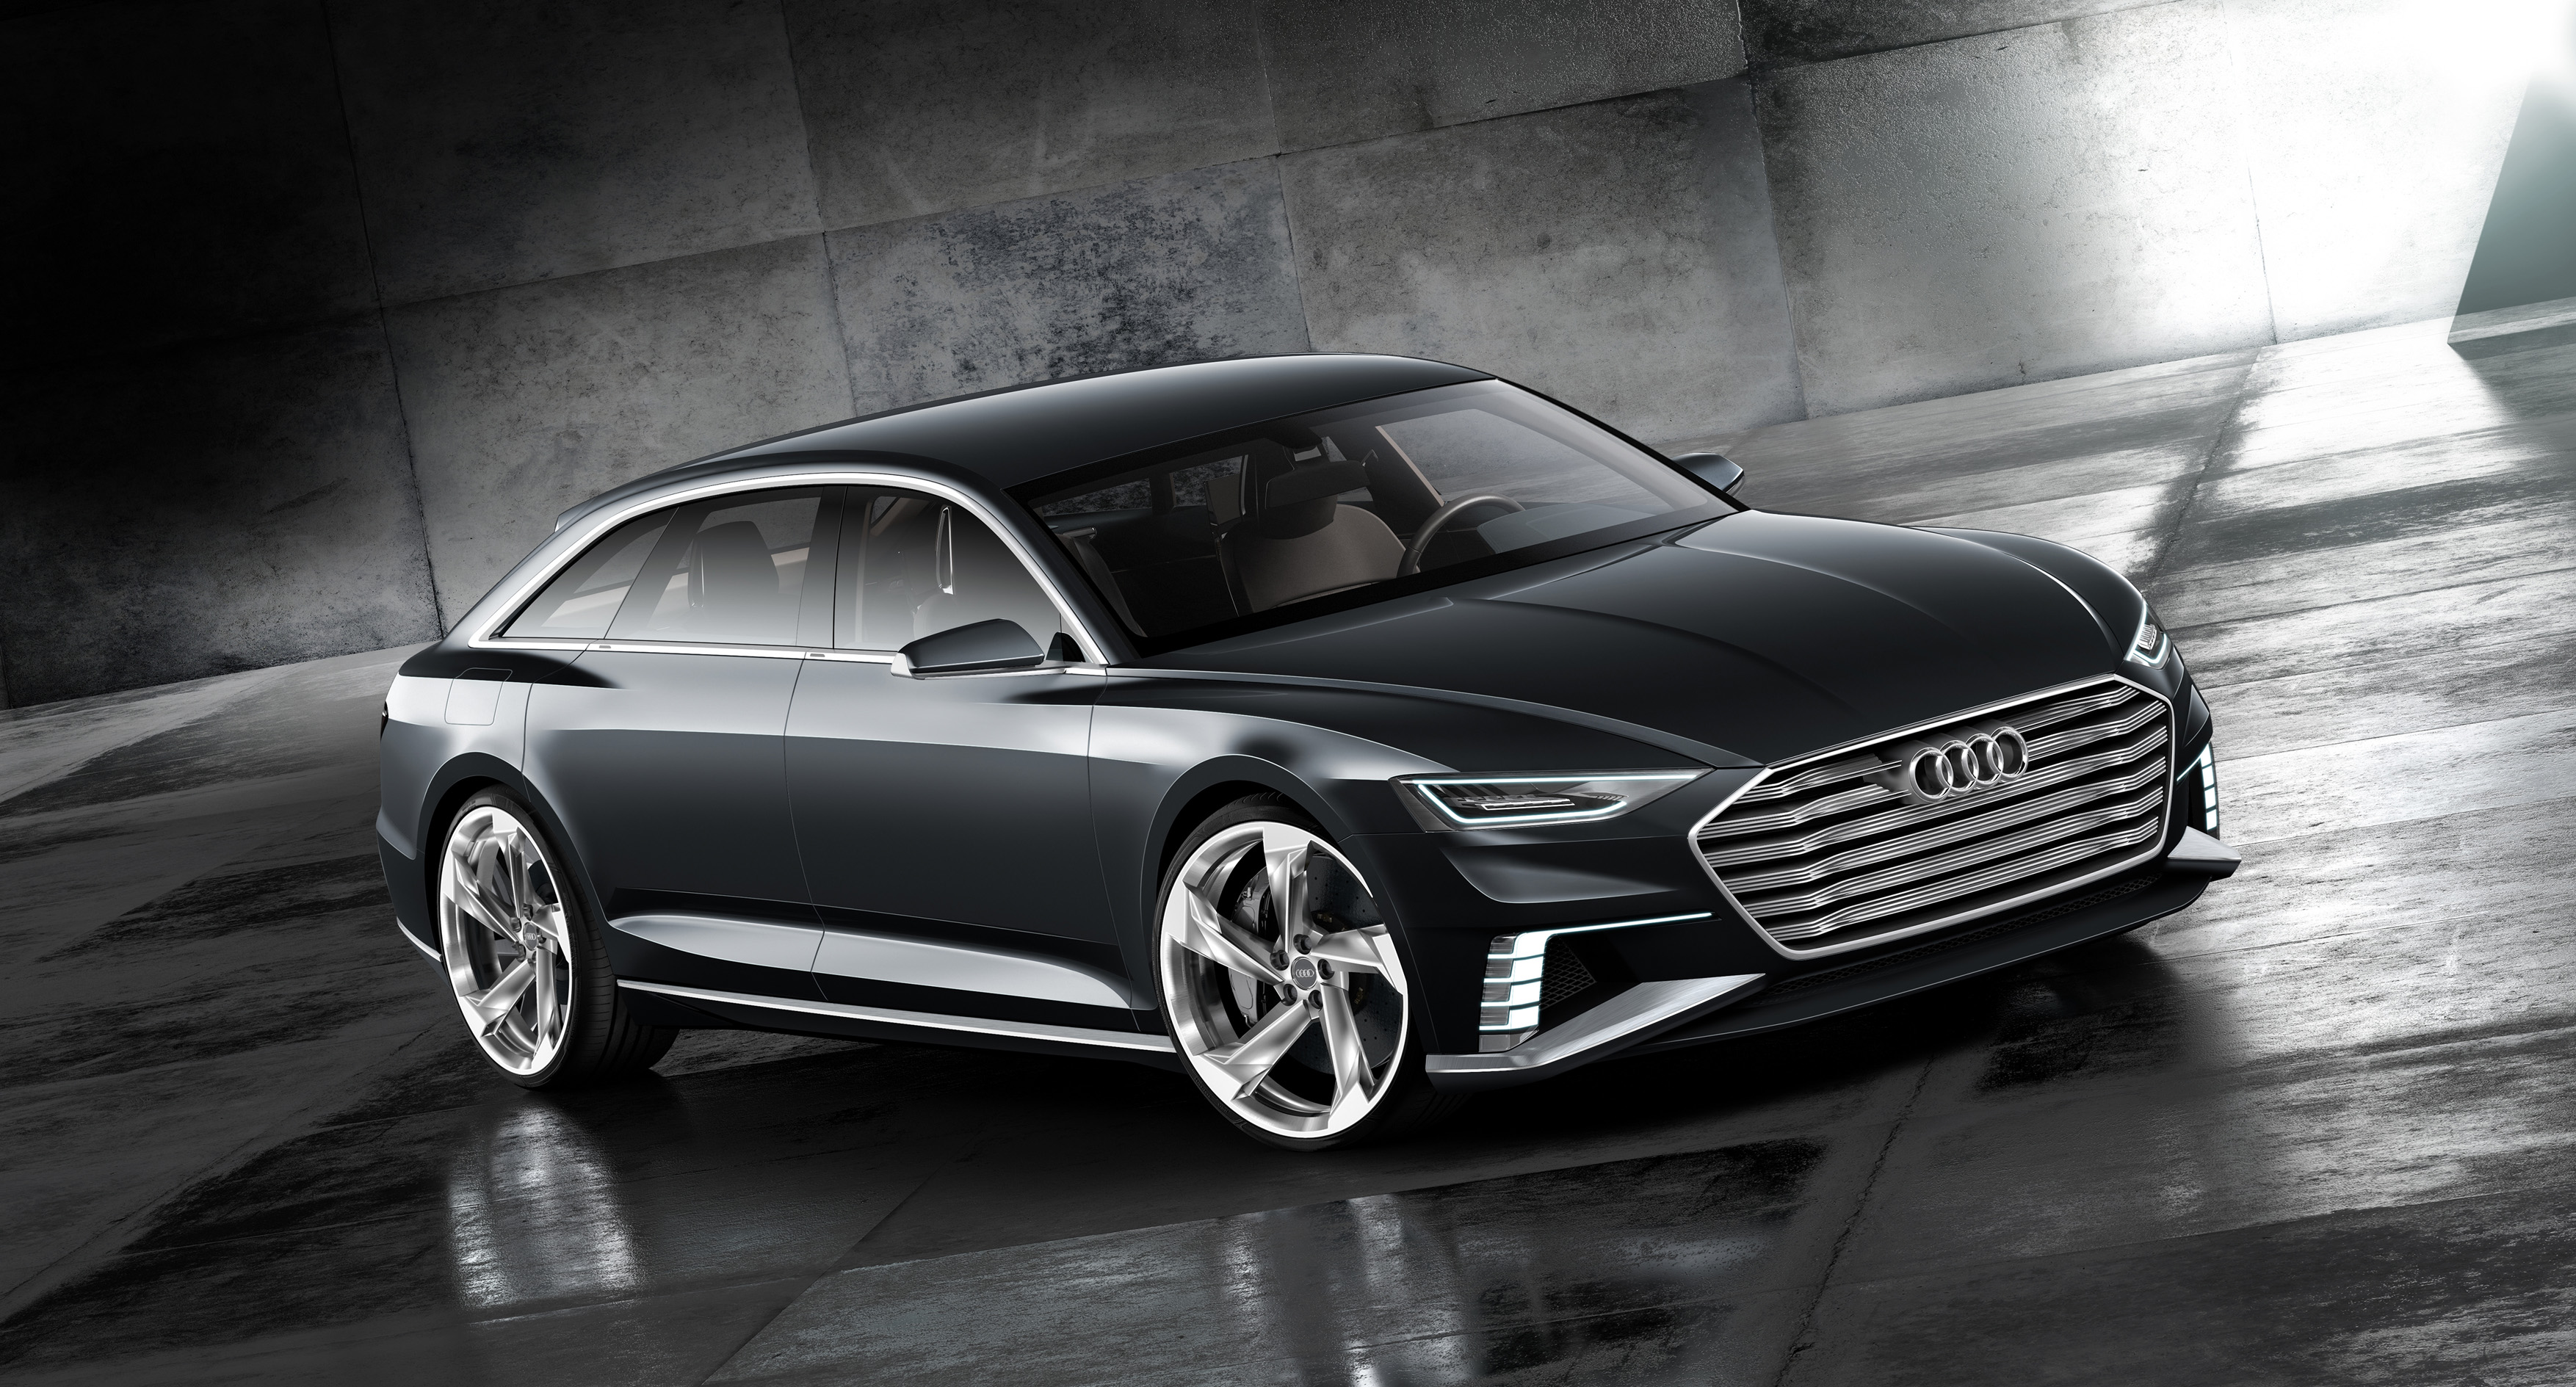 Next Gen Audi A8 Debuting in 2017 with Piloted Driving AutoGuide